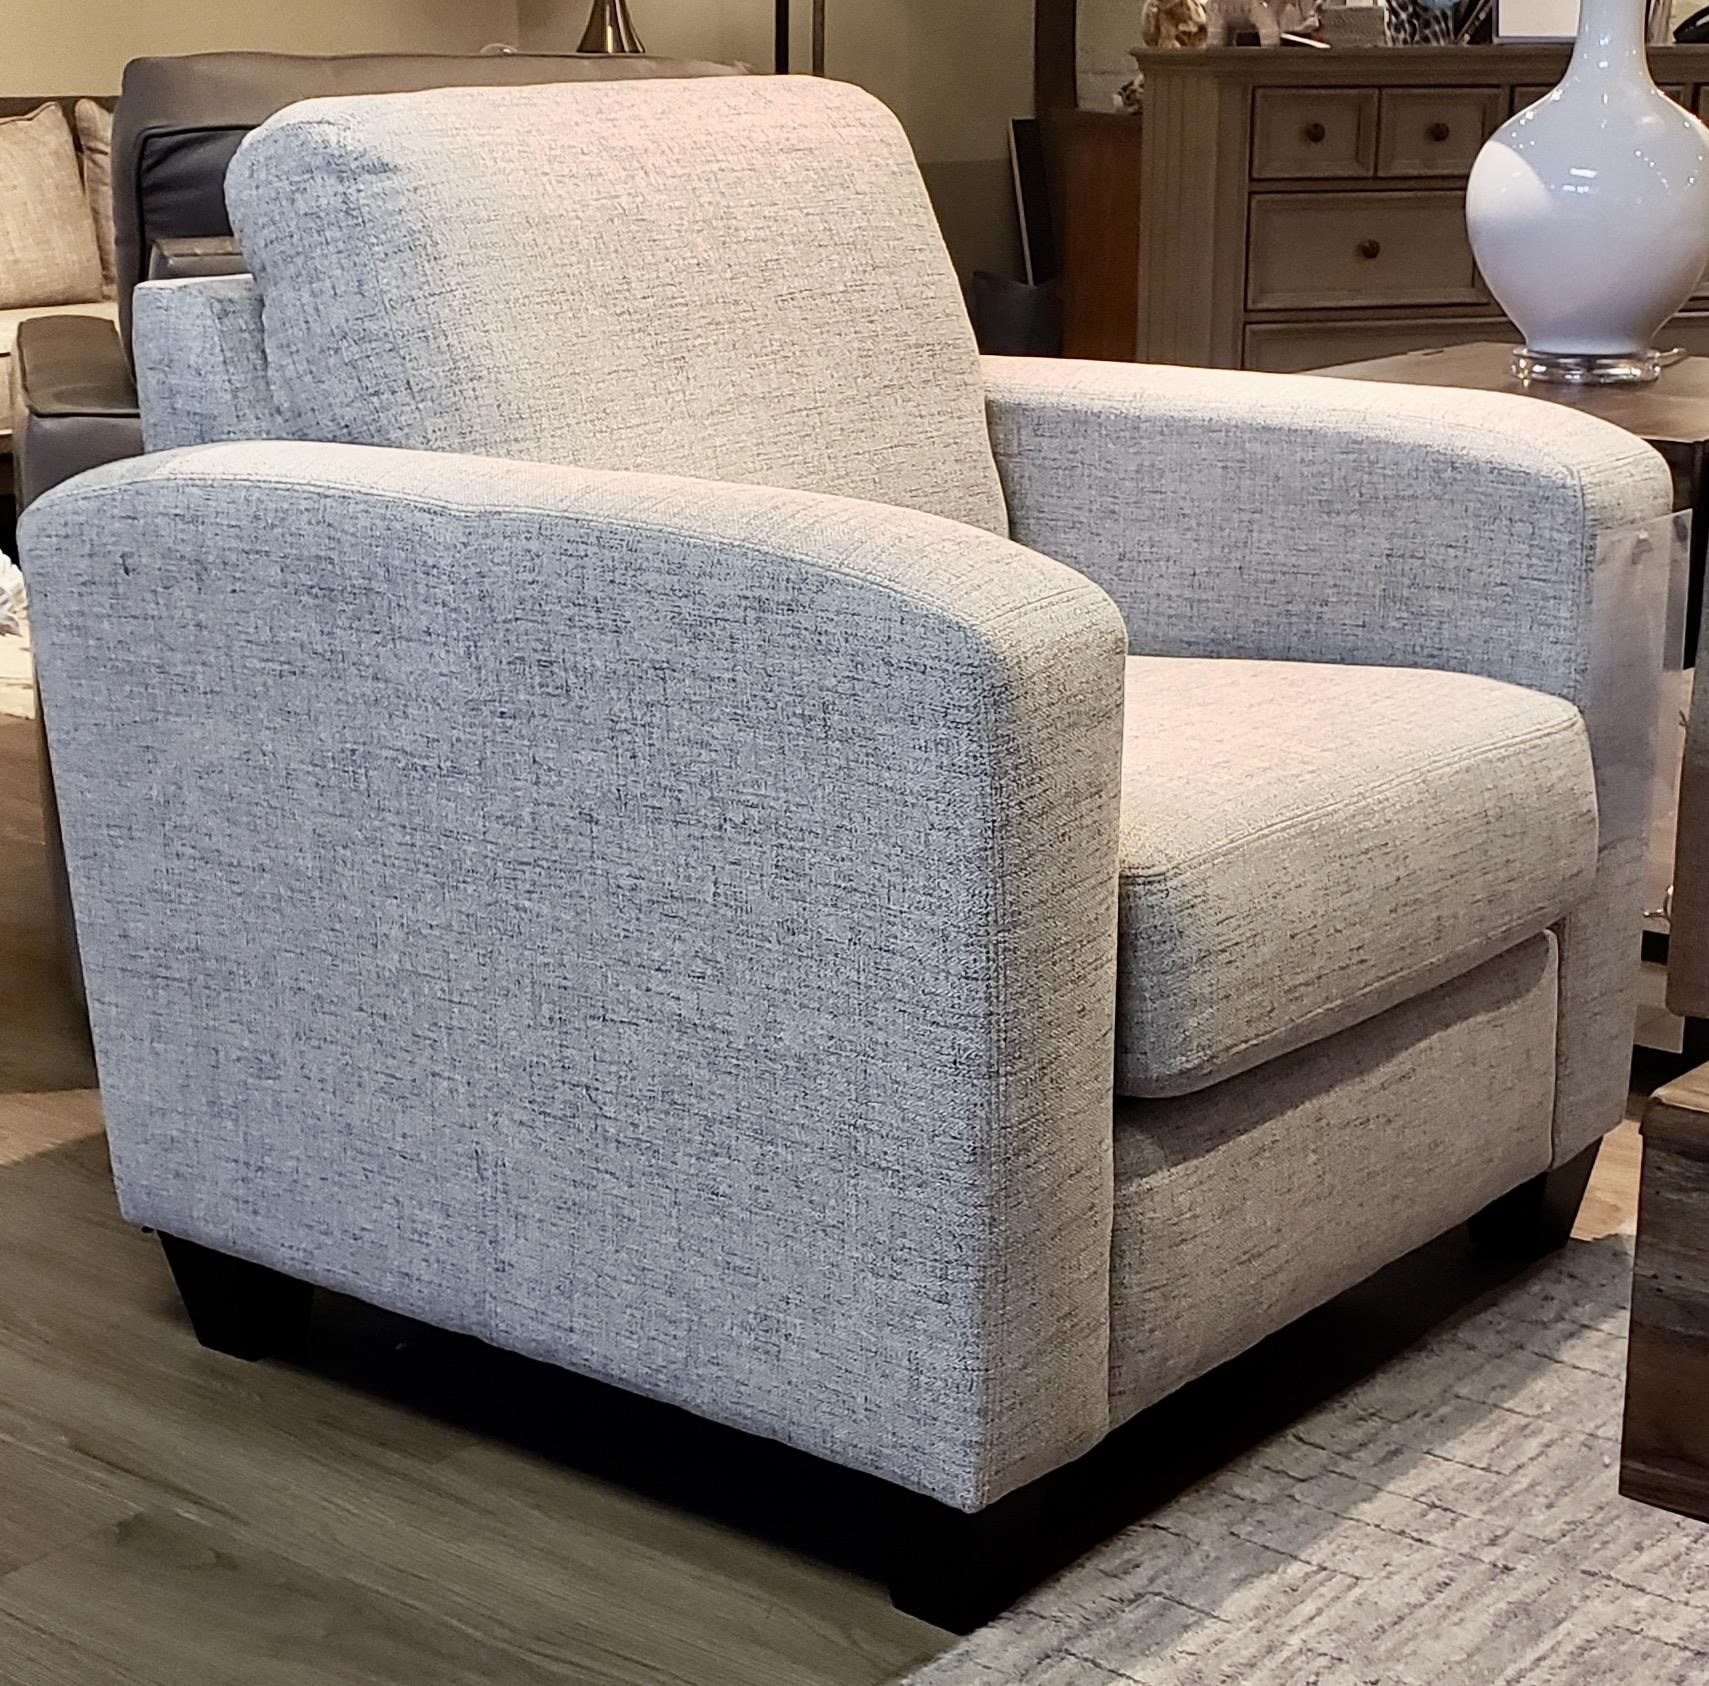 Encore Chair at Bennett's Furniture and Mattresses